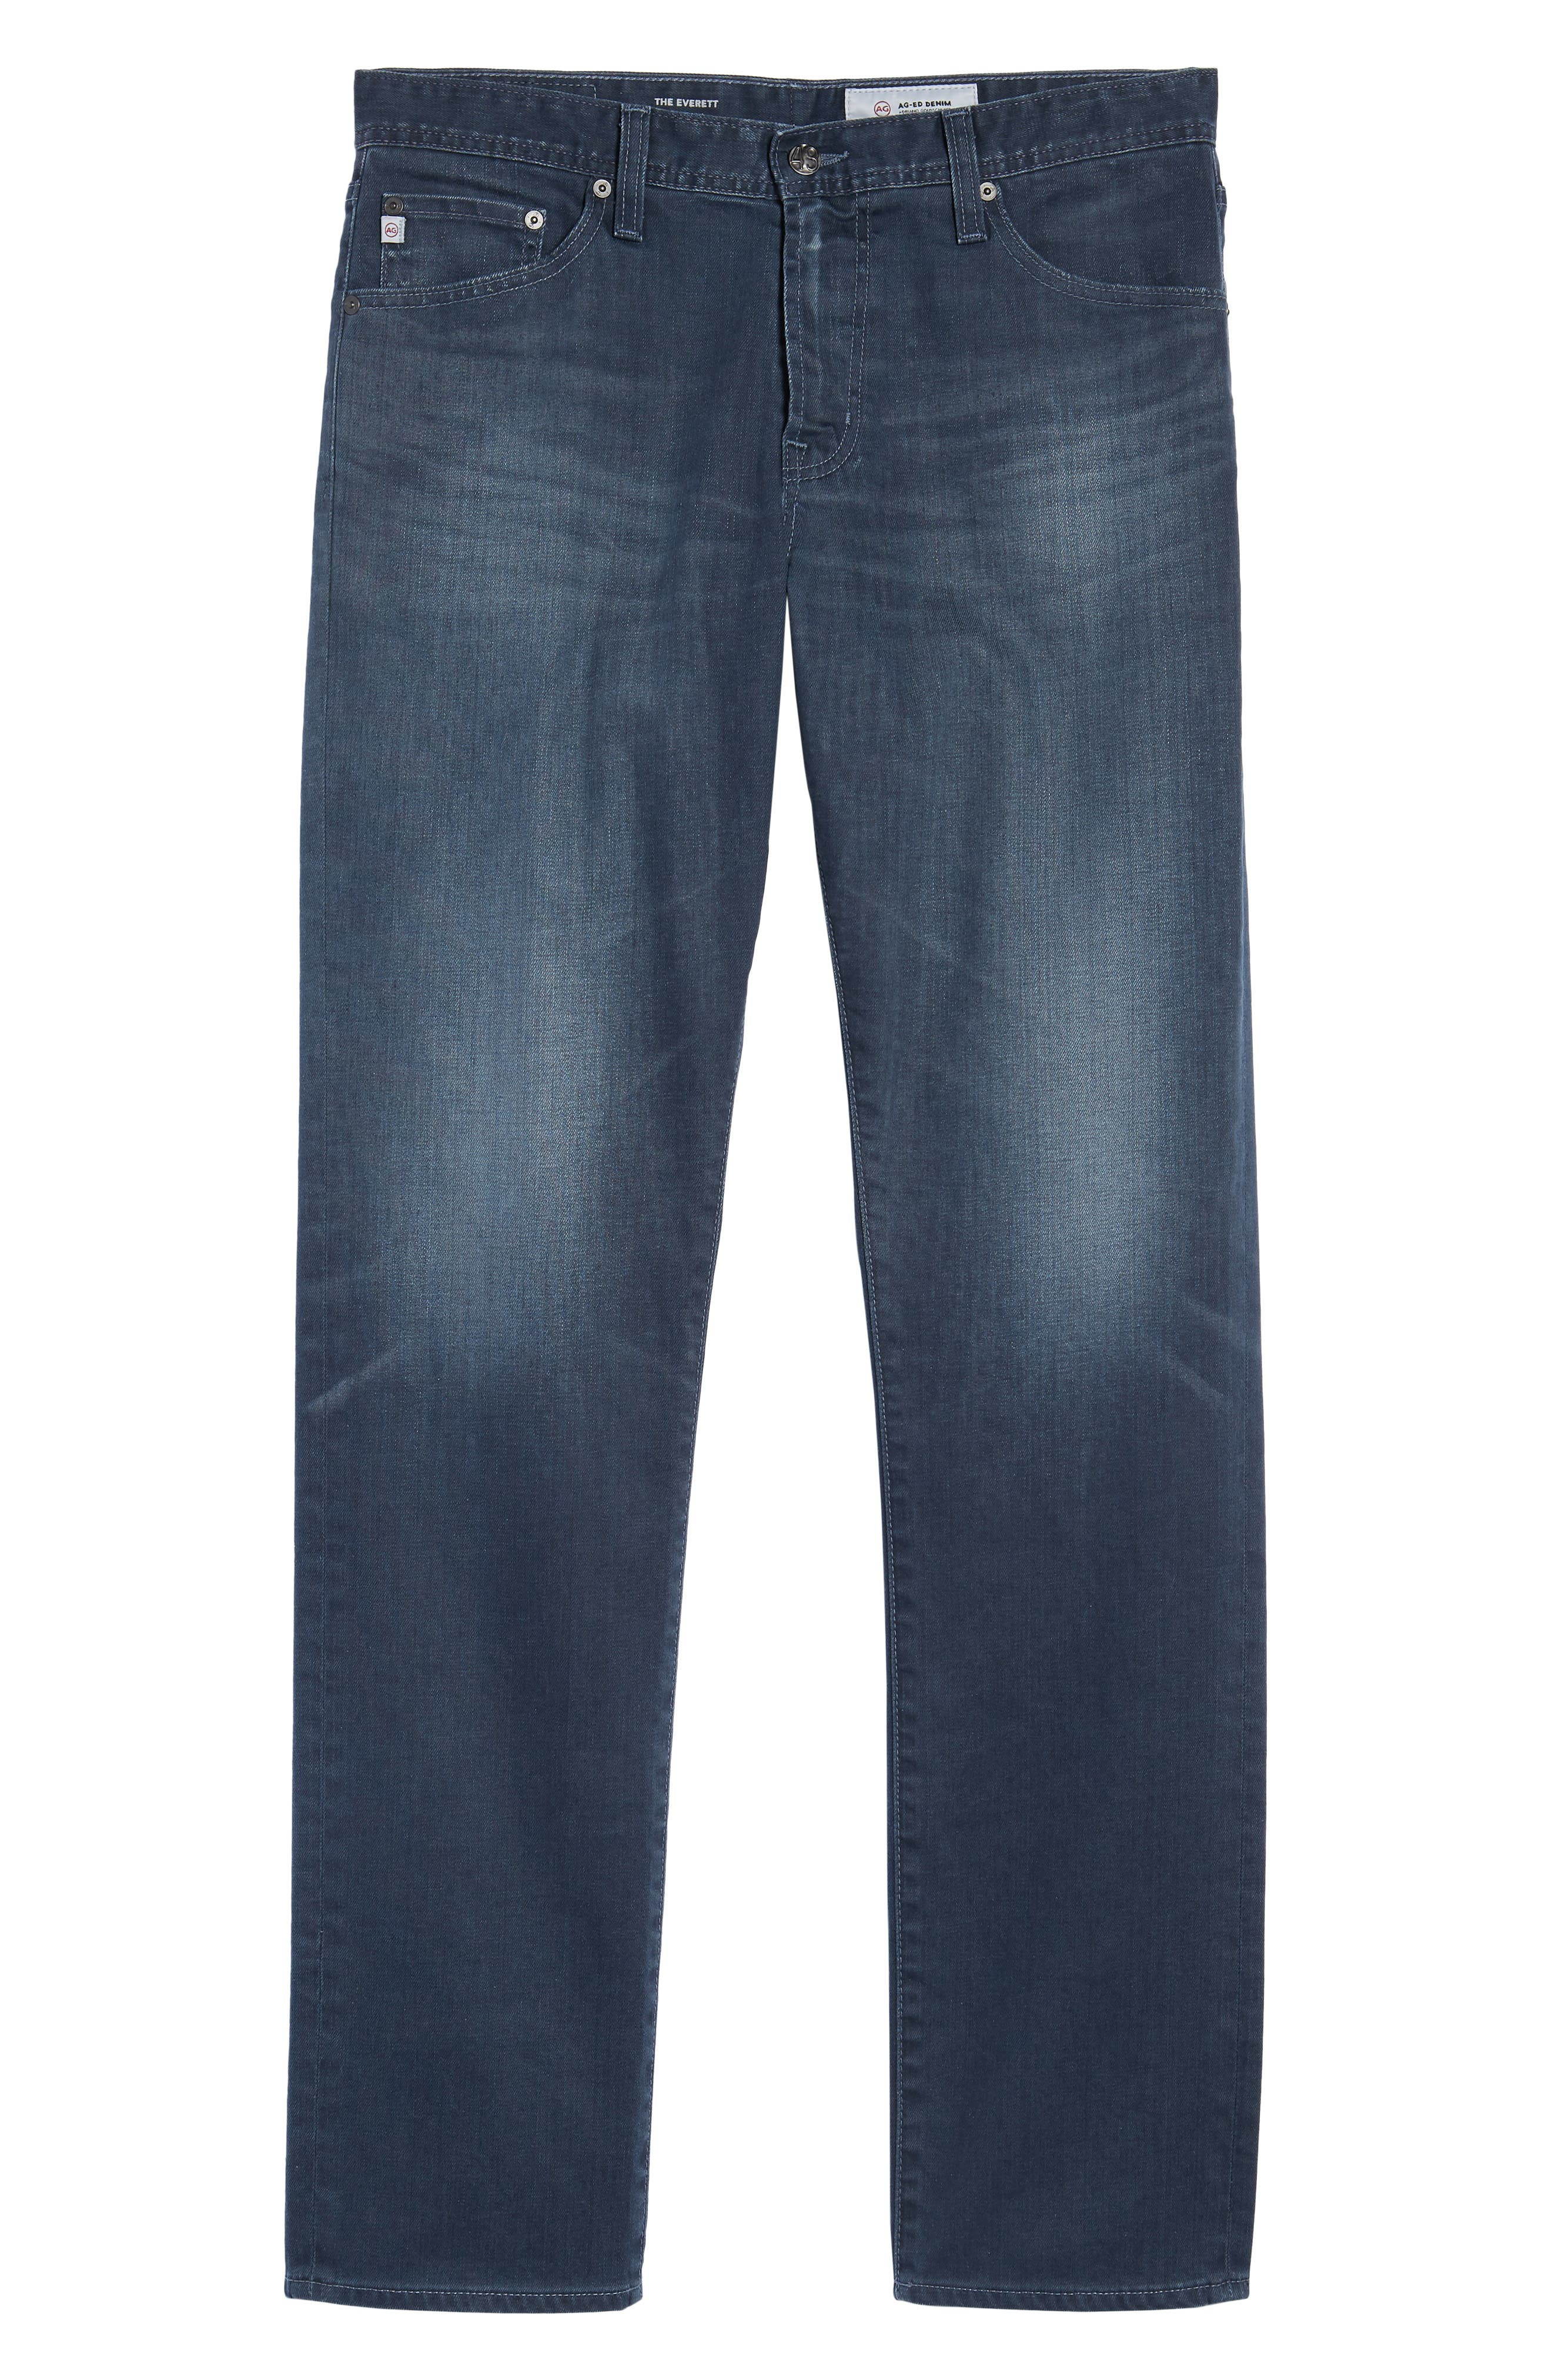 Everett Slim Straight Leg Jeans,                             Alternate thumbnail 6, color,                             9 YEARS TIDEPOOL